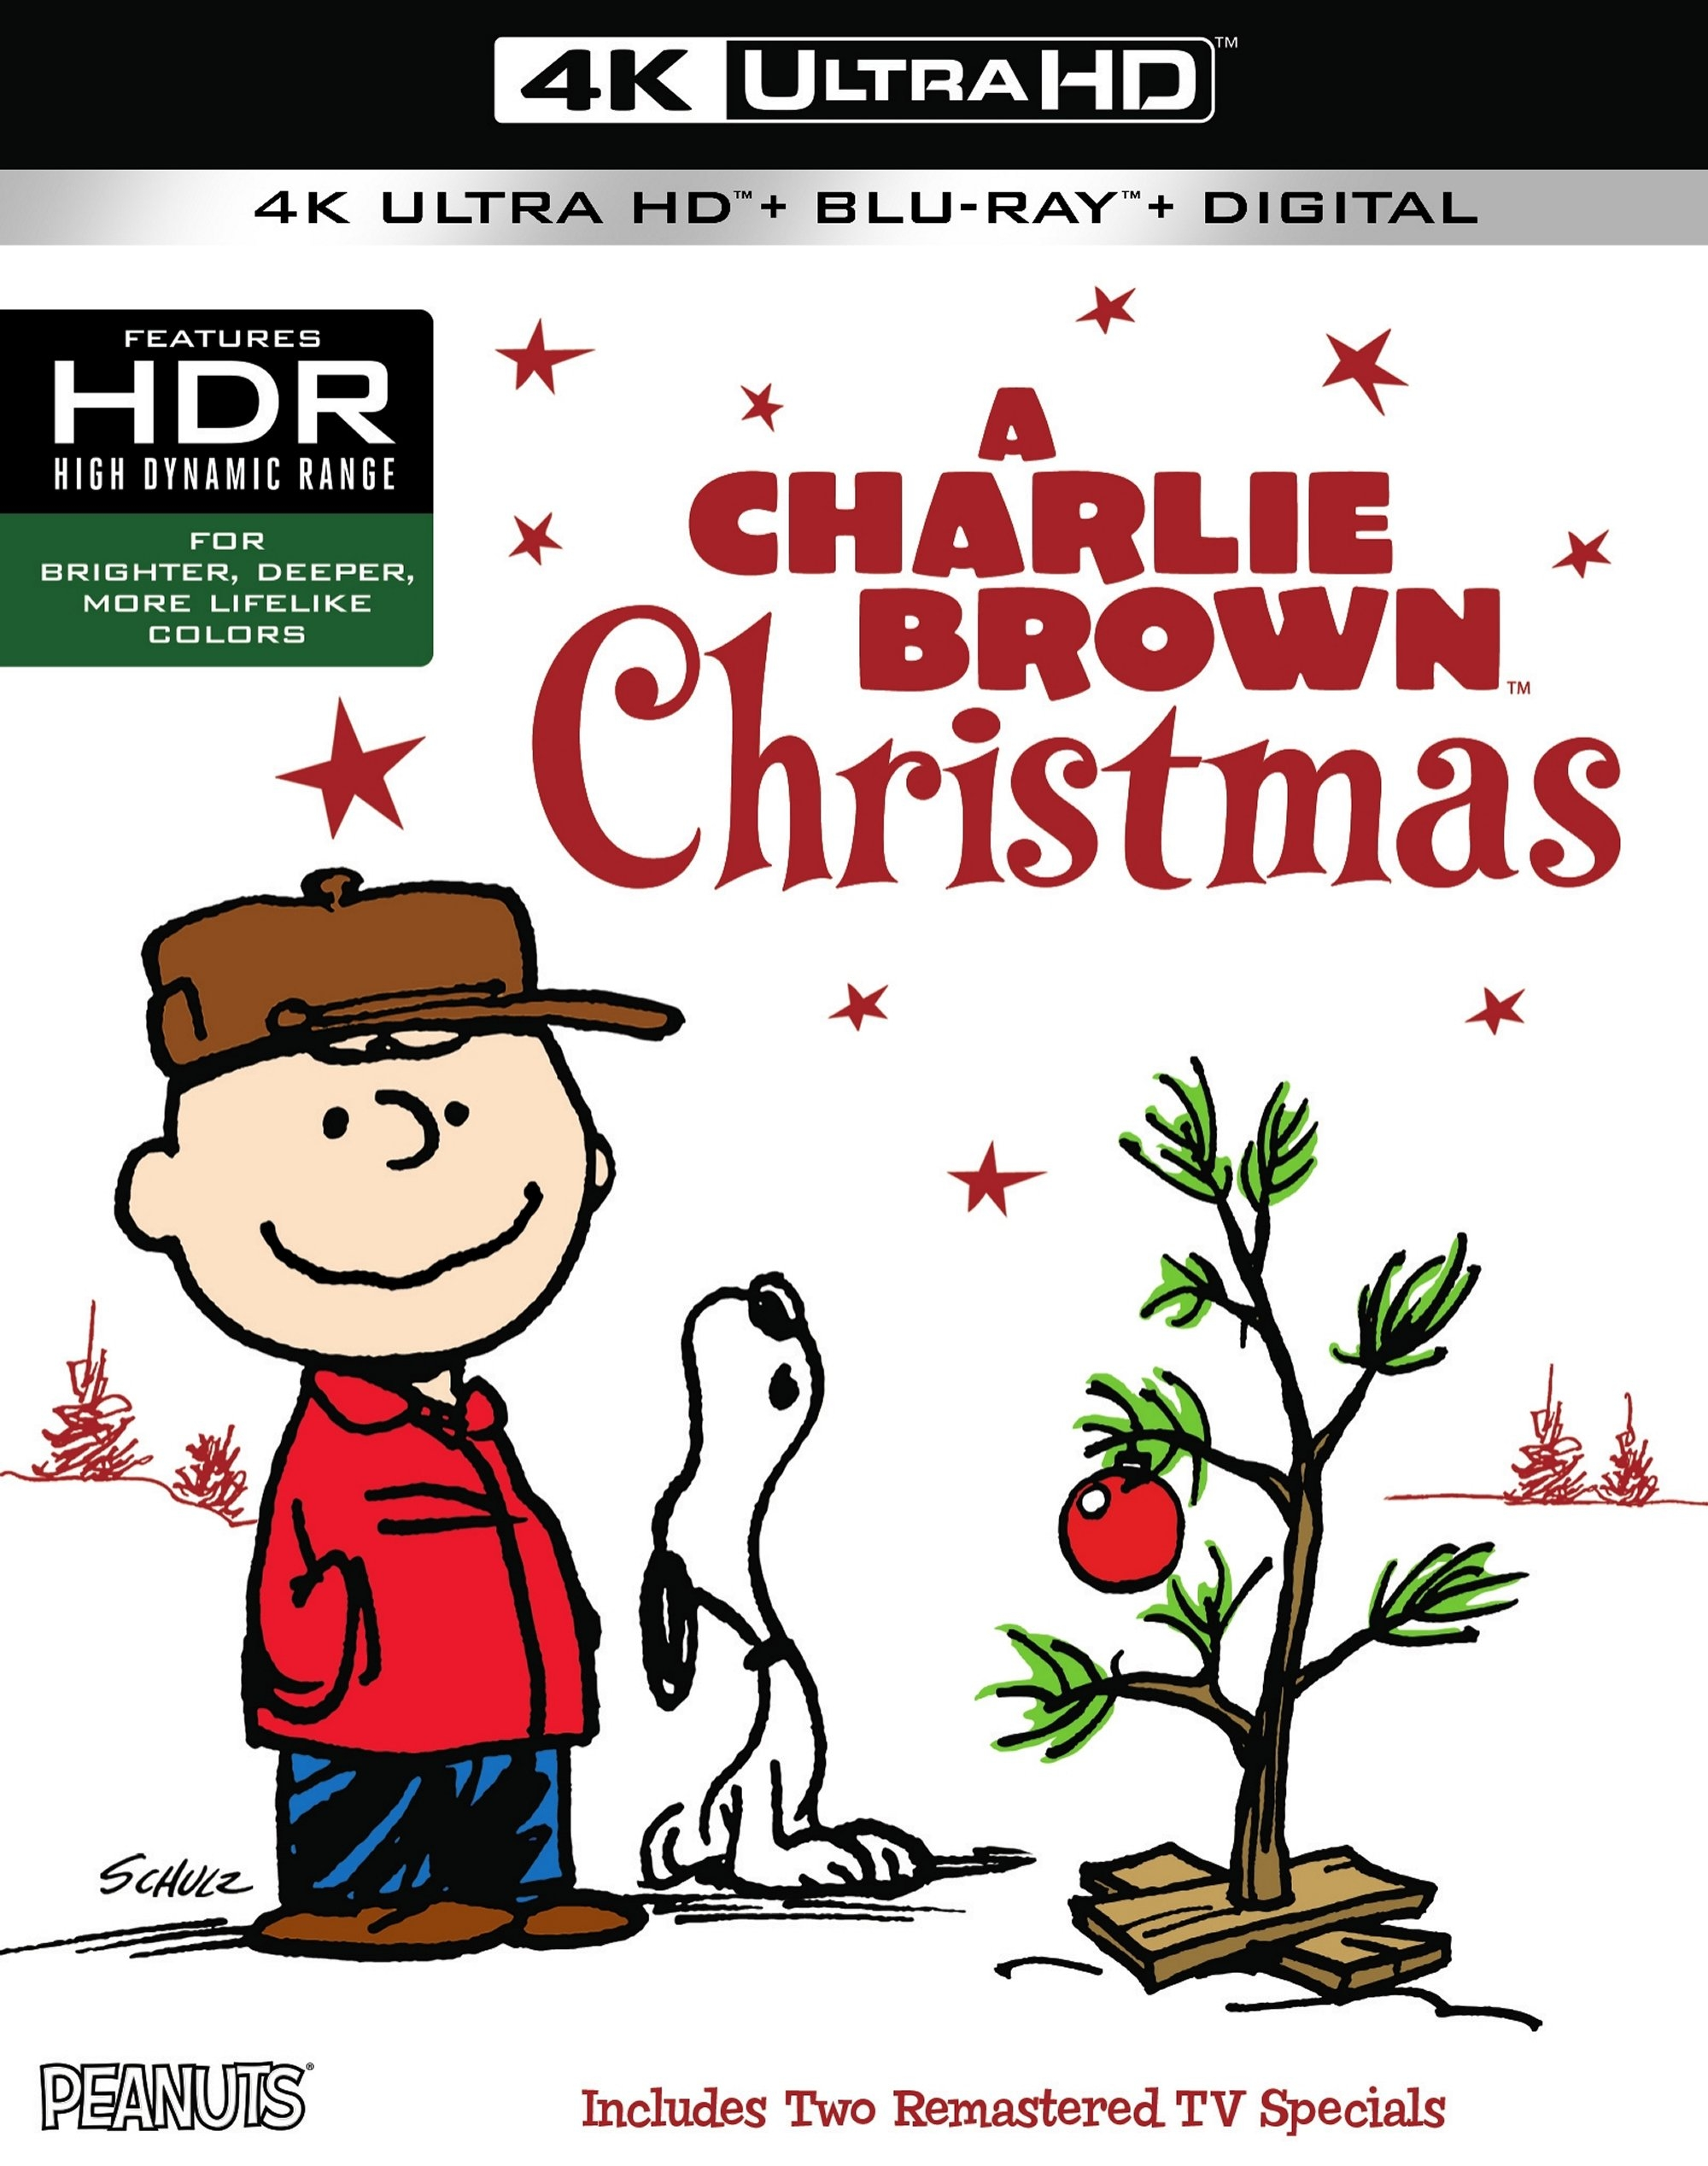 Charlie Brown Christmas Tree You'll Love in 2020 - VisualHunt